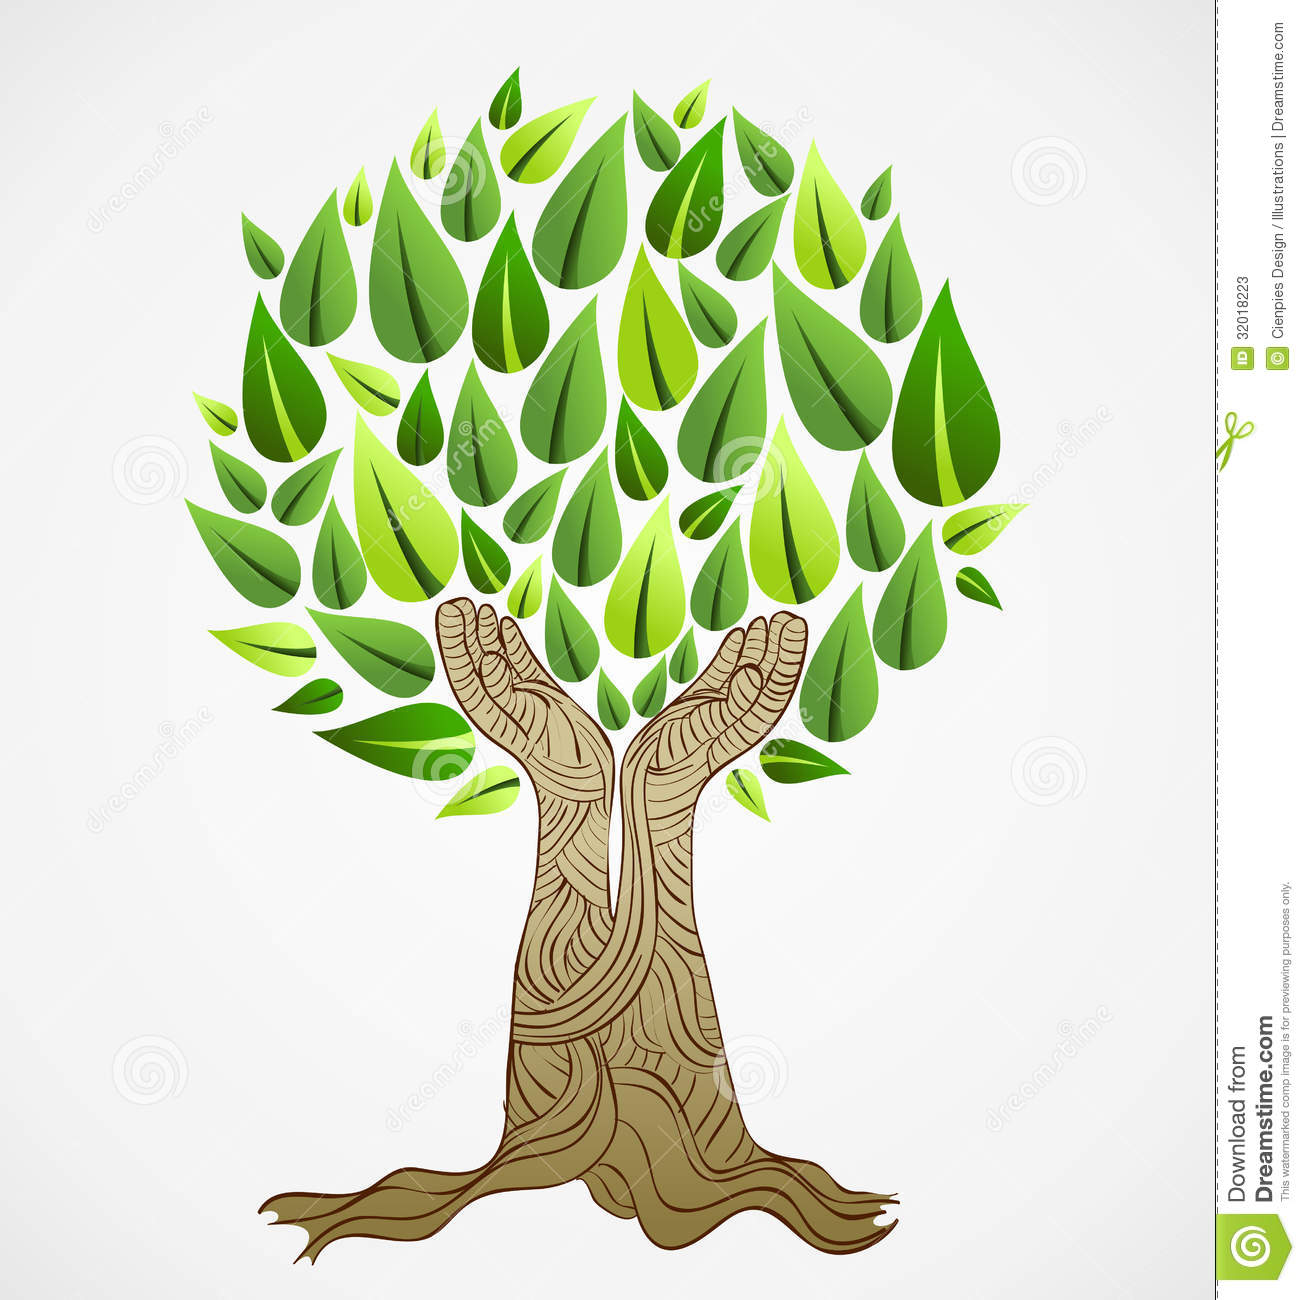 Save trees clipart black and white stock Save a tree clipart - ClipartFox black and white stock